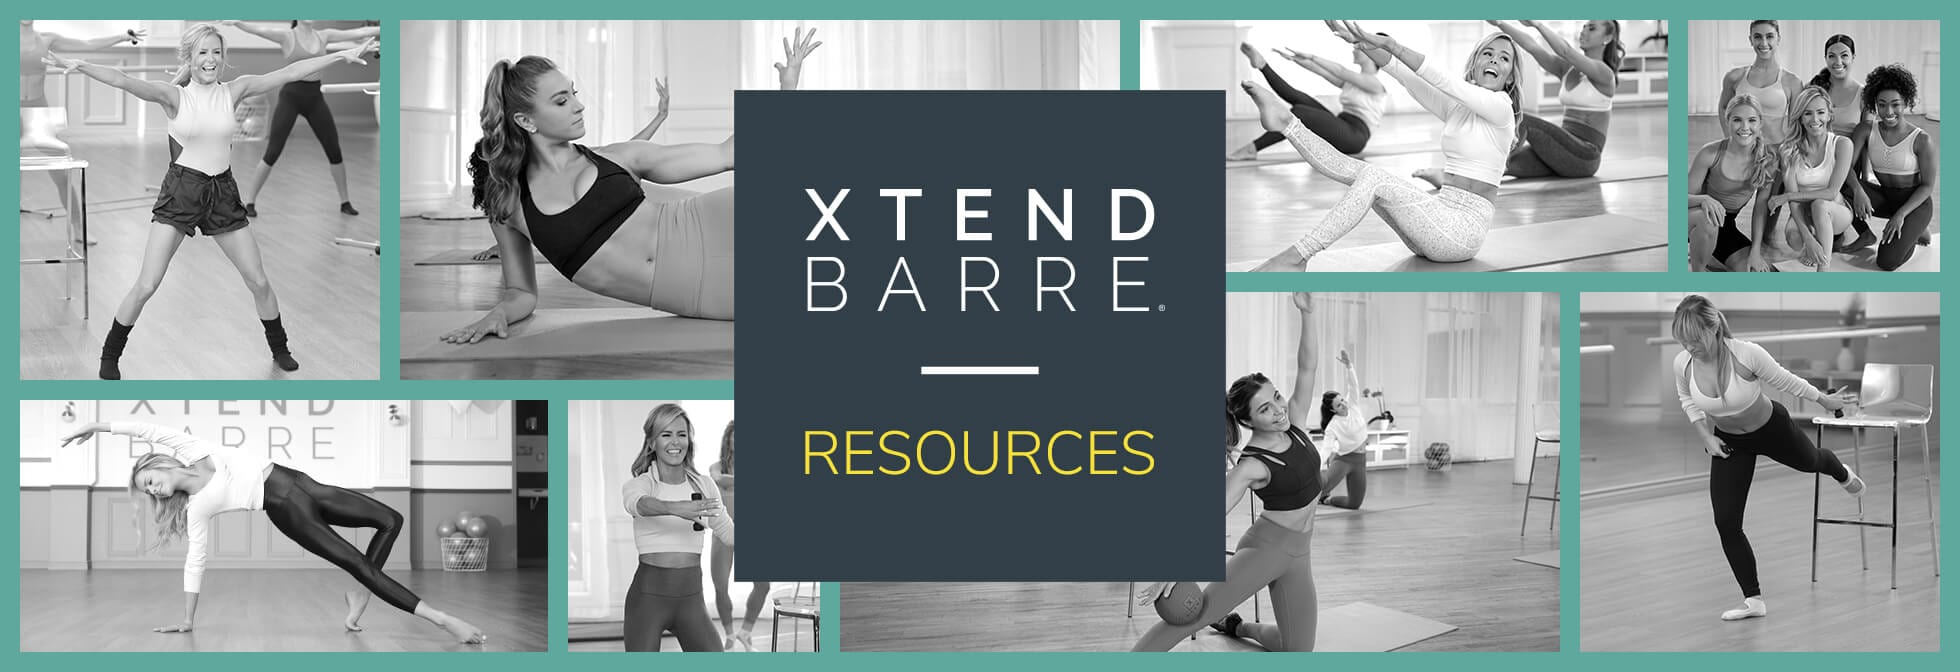 Xtend Barre Resources